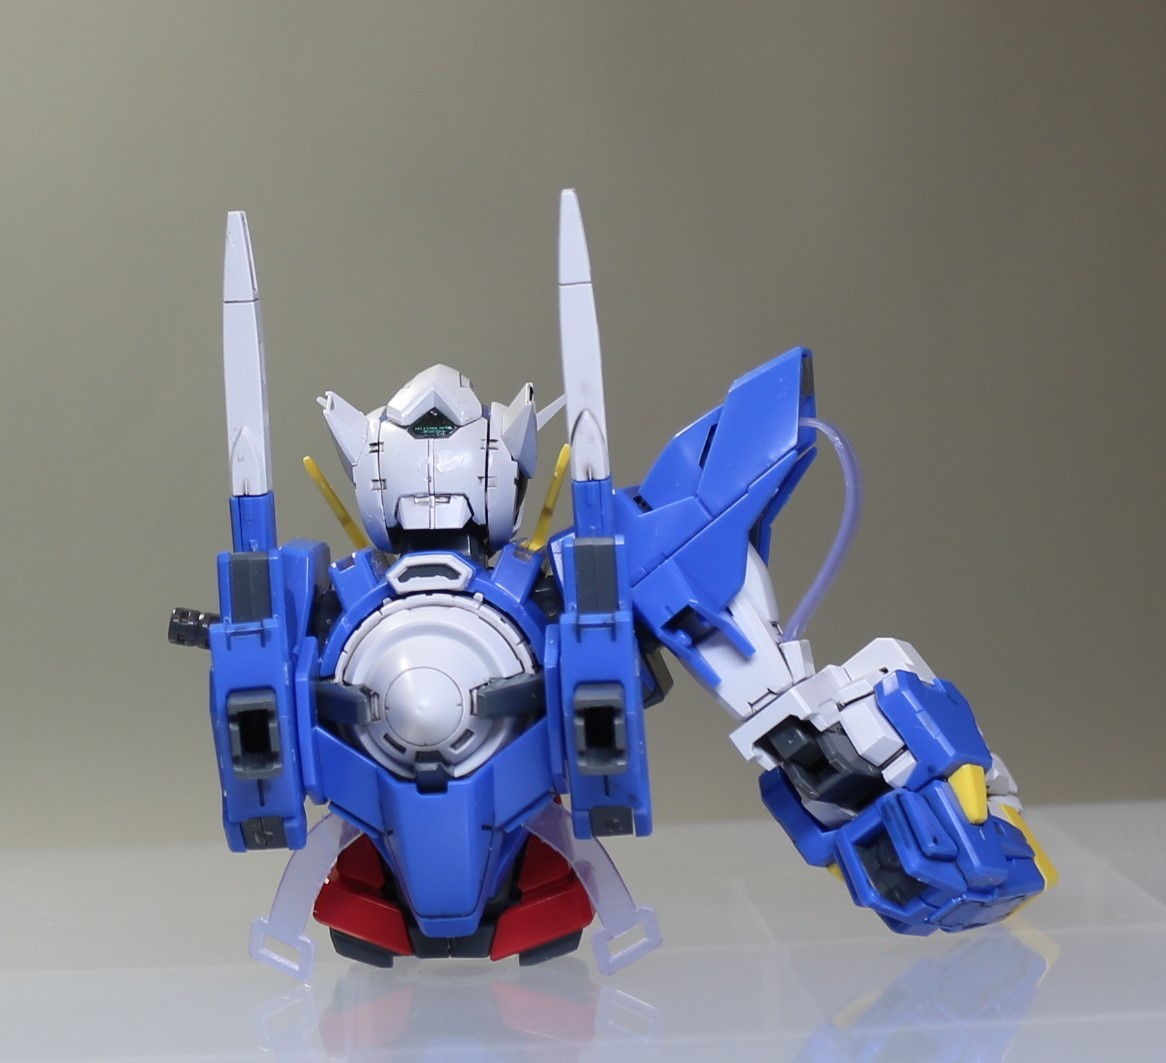 MG-AVALANCHE_EXIA_D-82.jpg